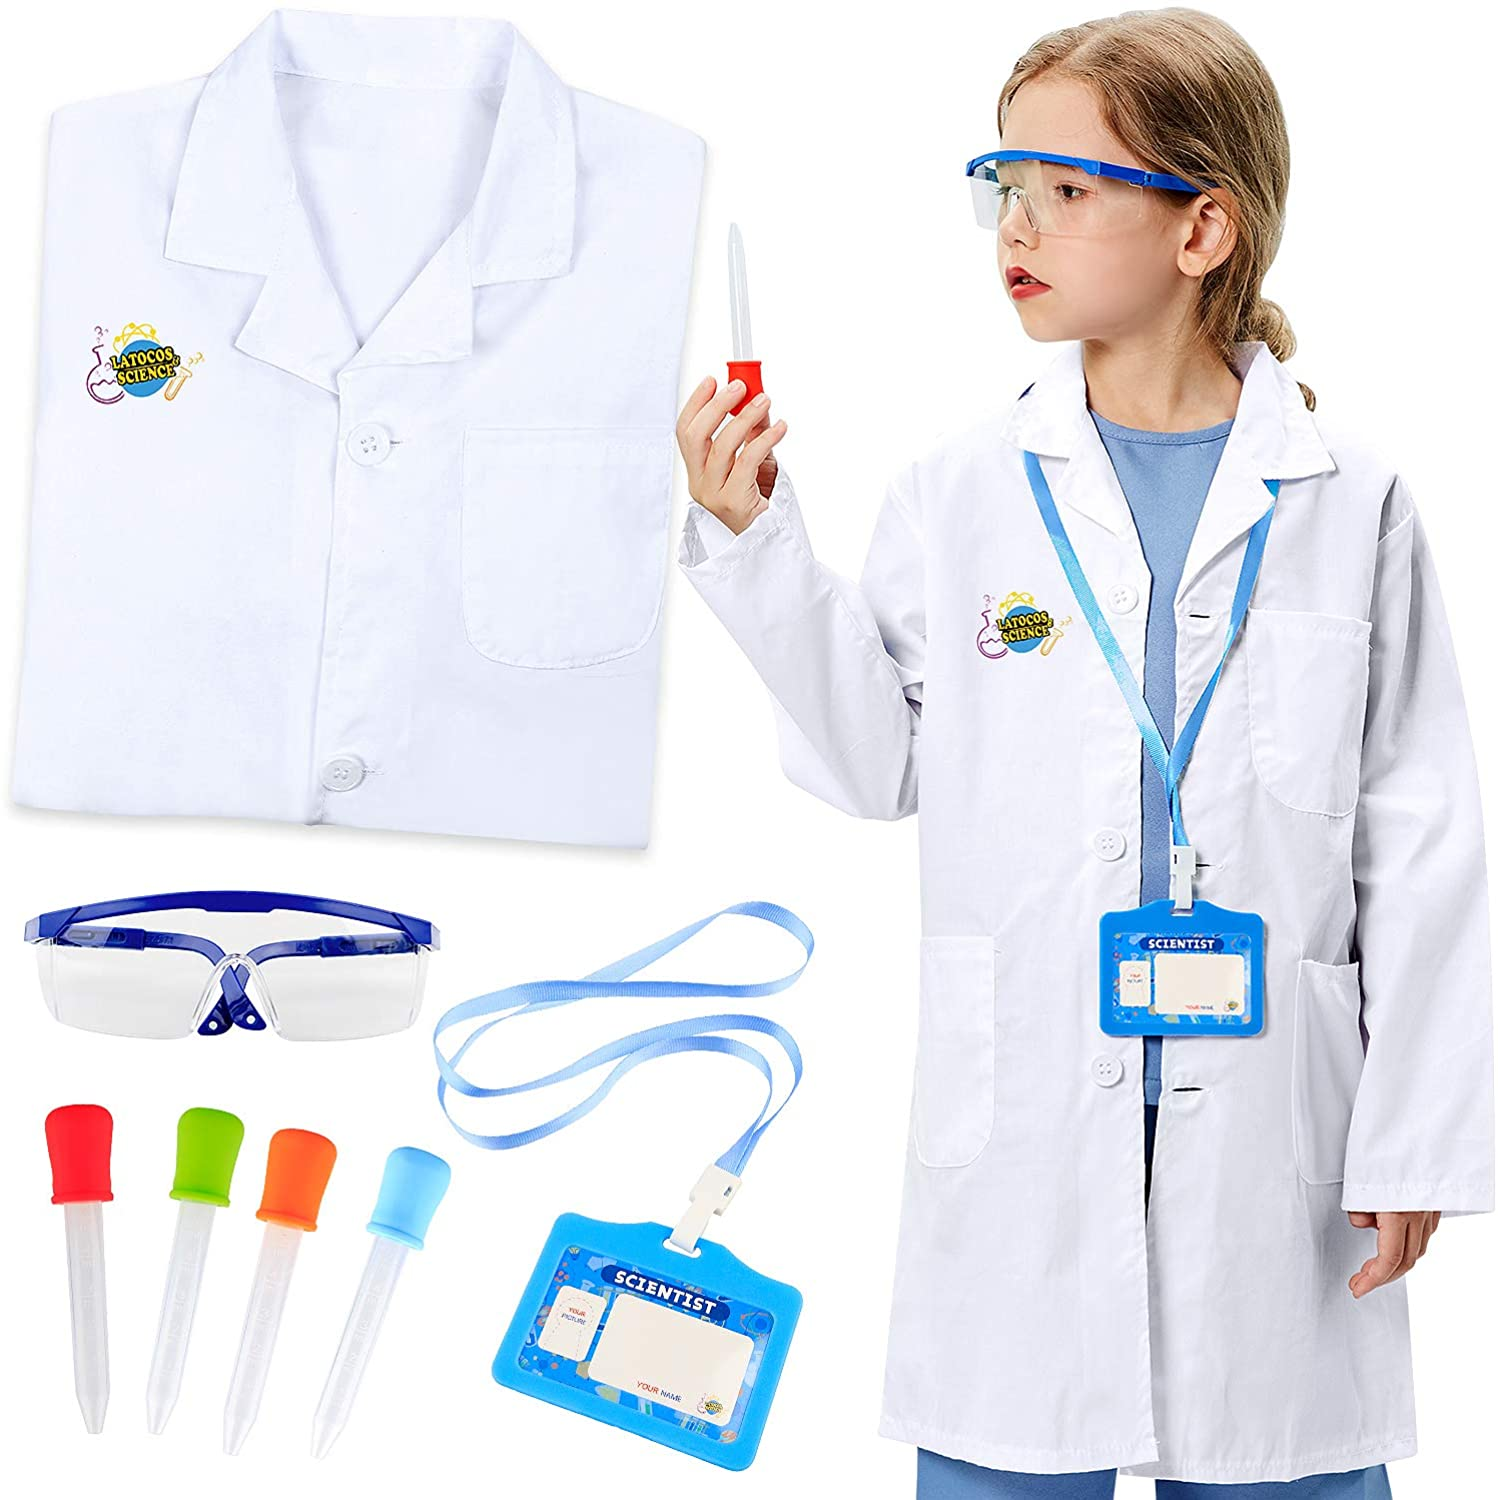 G.C kids Lab Coat with Goggles Personalized ID Card Eyedroppers Scientist Costume pretend Role Play Cosplay Dress Up Children Toys Gift science kit for Boys Girls